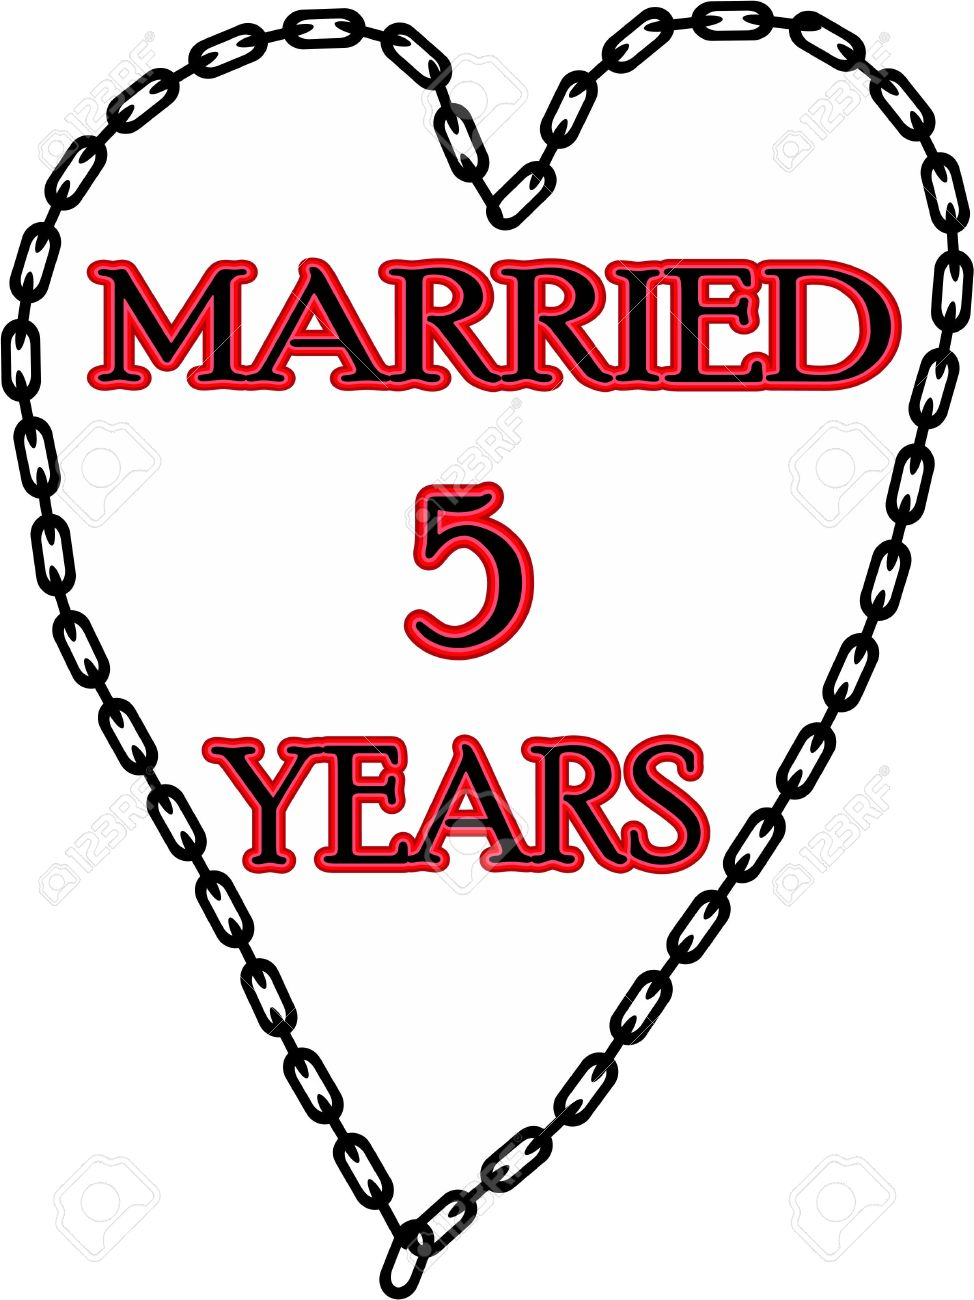 Humoristic Marriage Wedding Anniversary Chained For 5 Years